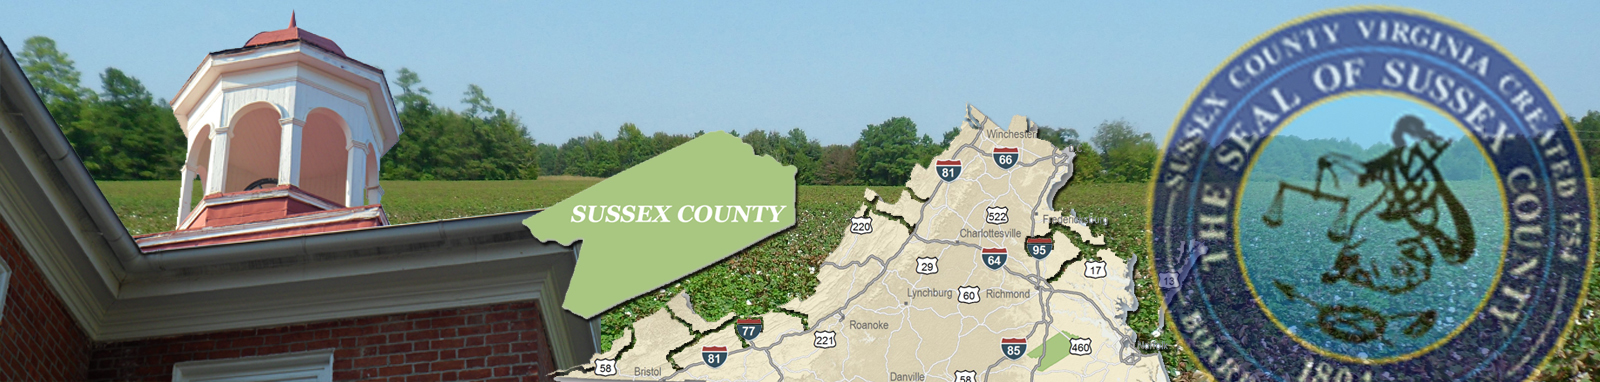 About Sussex County